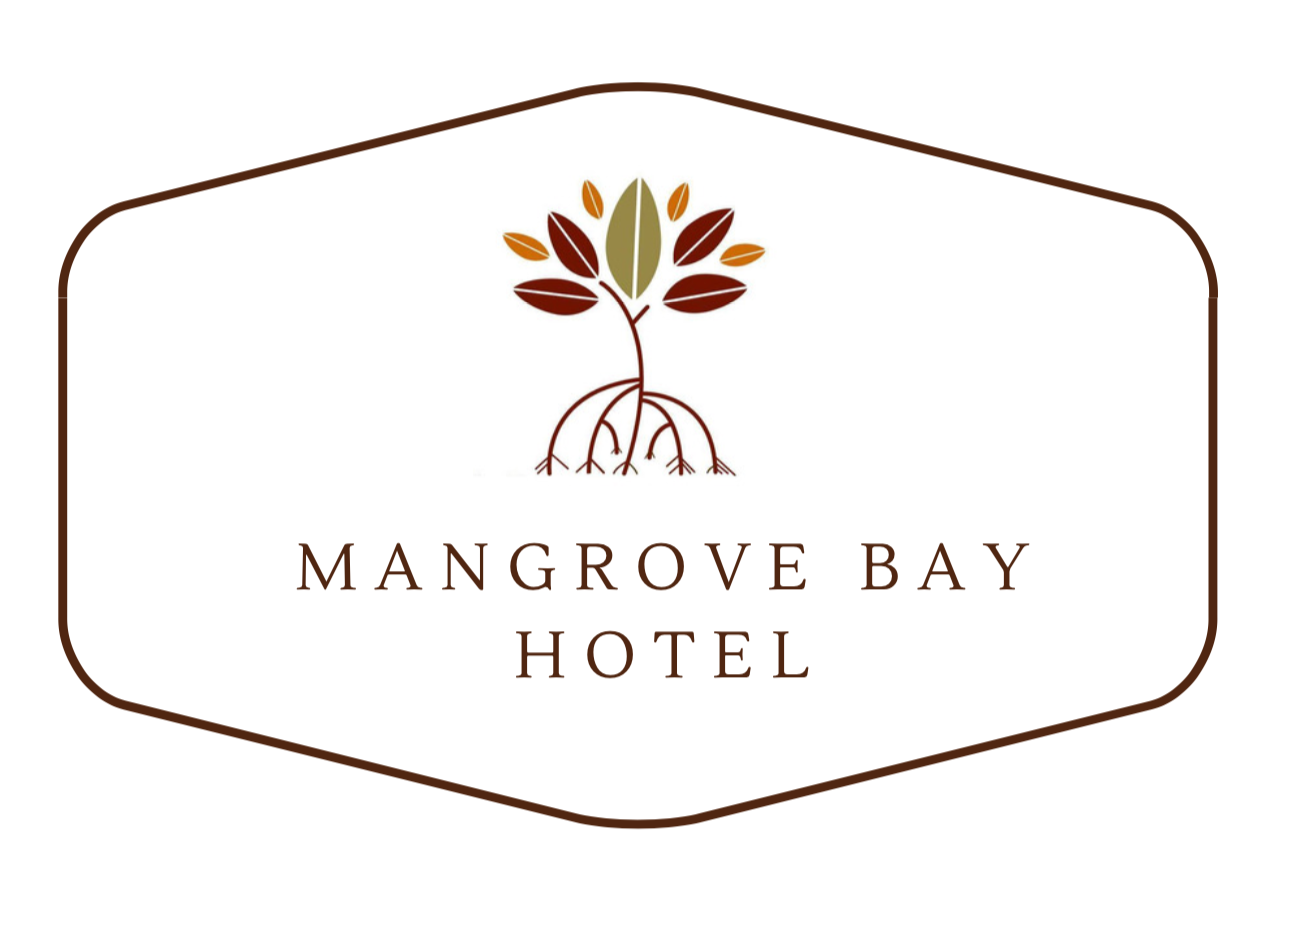 Mangrove Bay Hotel, your one-stop place for all your accommodation and tourist needs in Pohnpei.